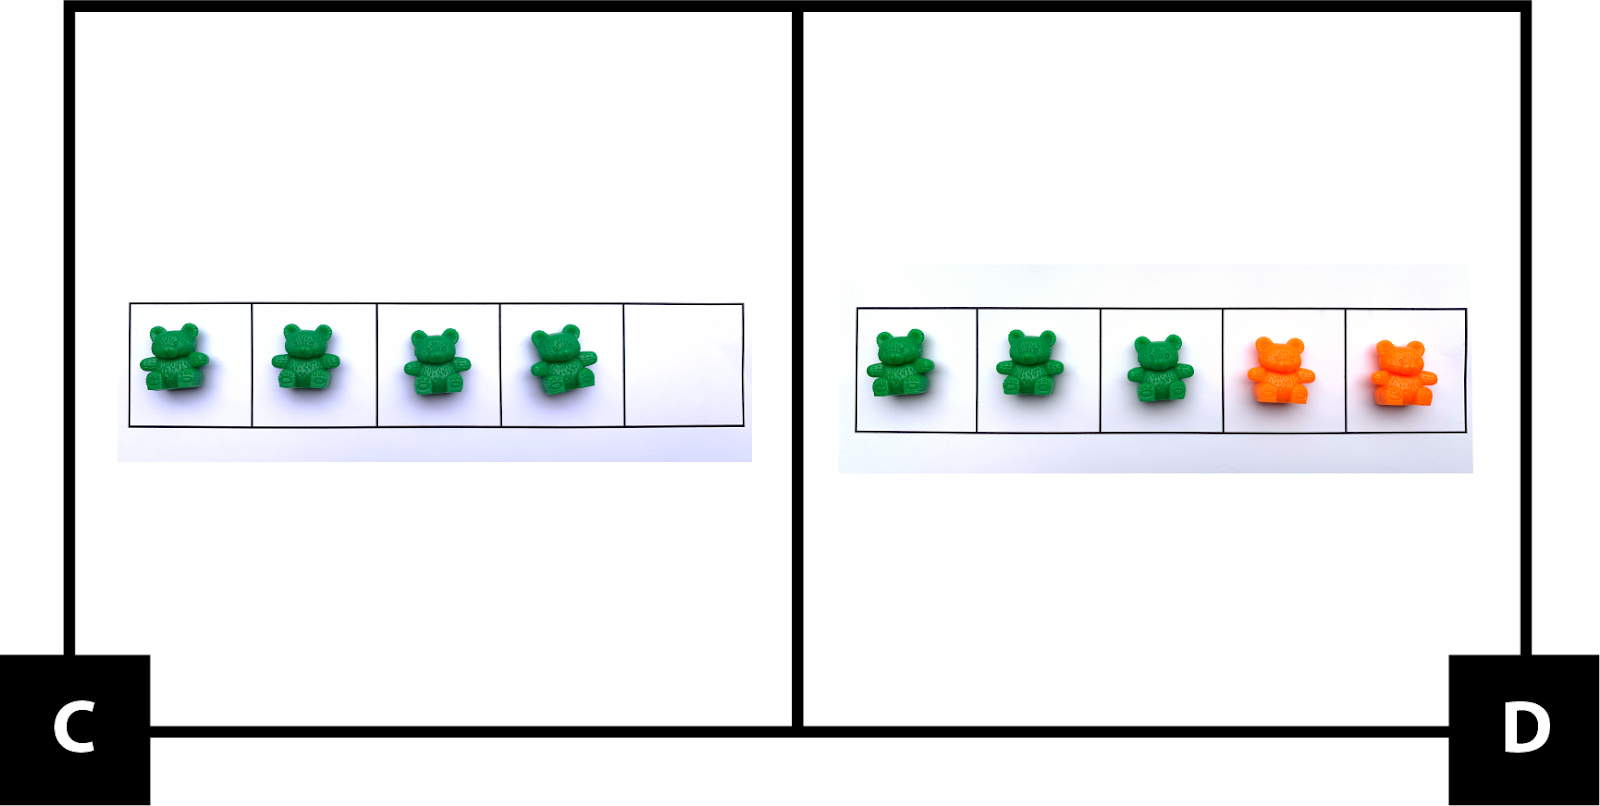 C: A five-frame with 4 green teddy bears and 1 empty box. D: A five-frame with 3 green teddy bears and 2 orange bears.